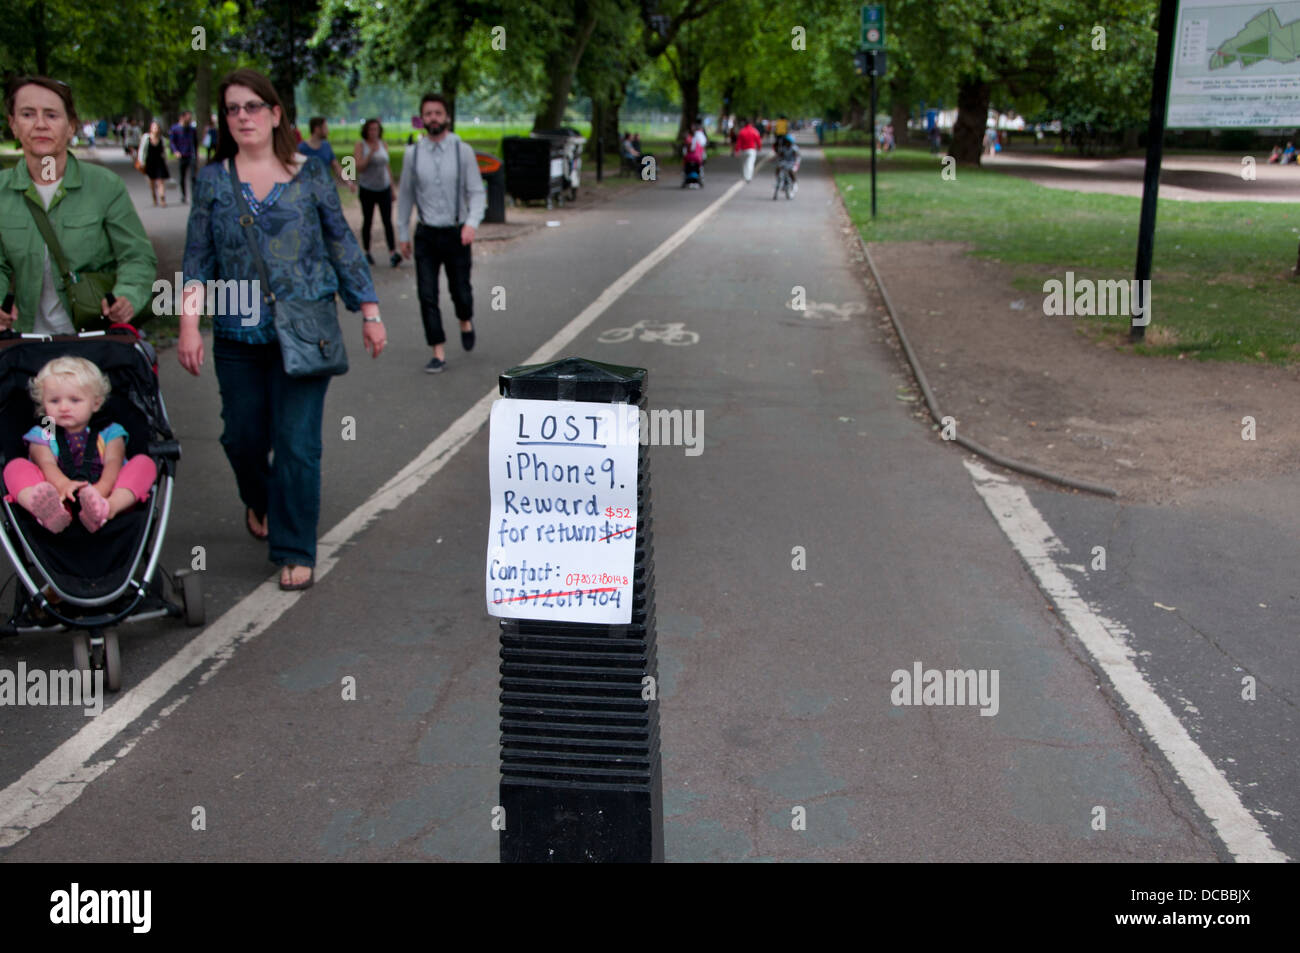 Hackney , London Fields. Notice appealing for return of lost I-phone and offering reward. - Stock Image